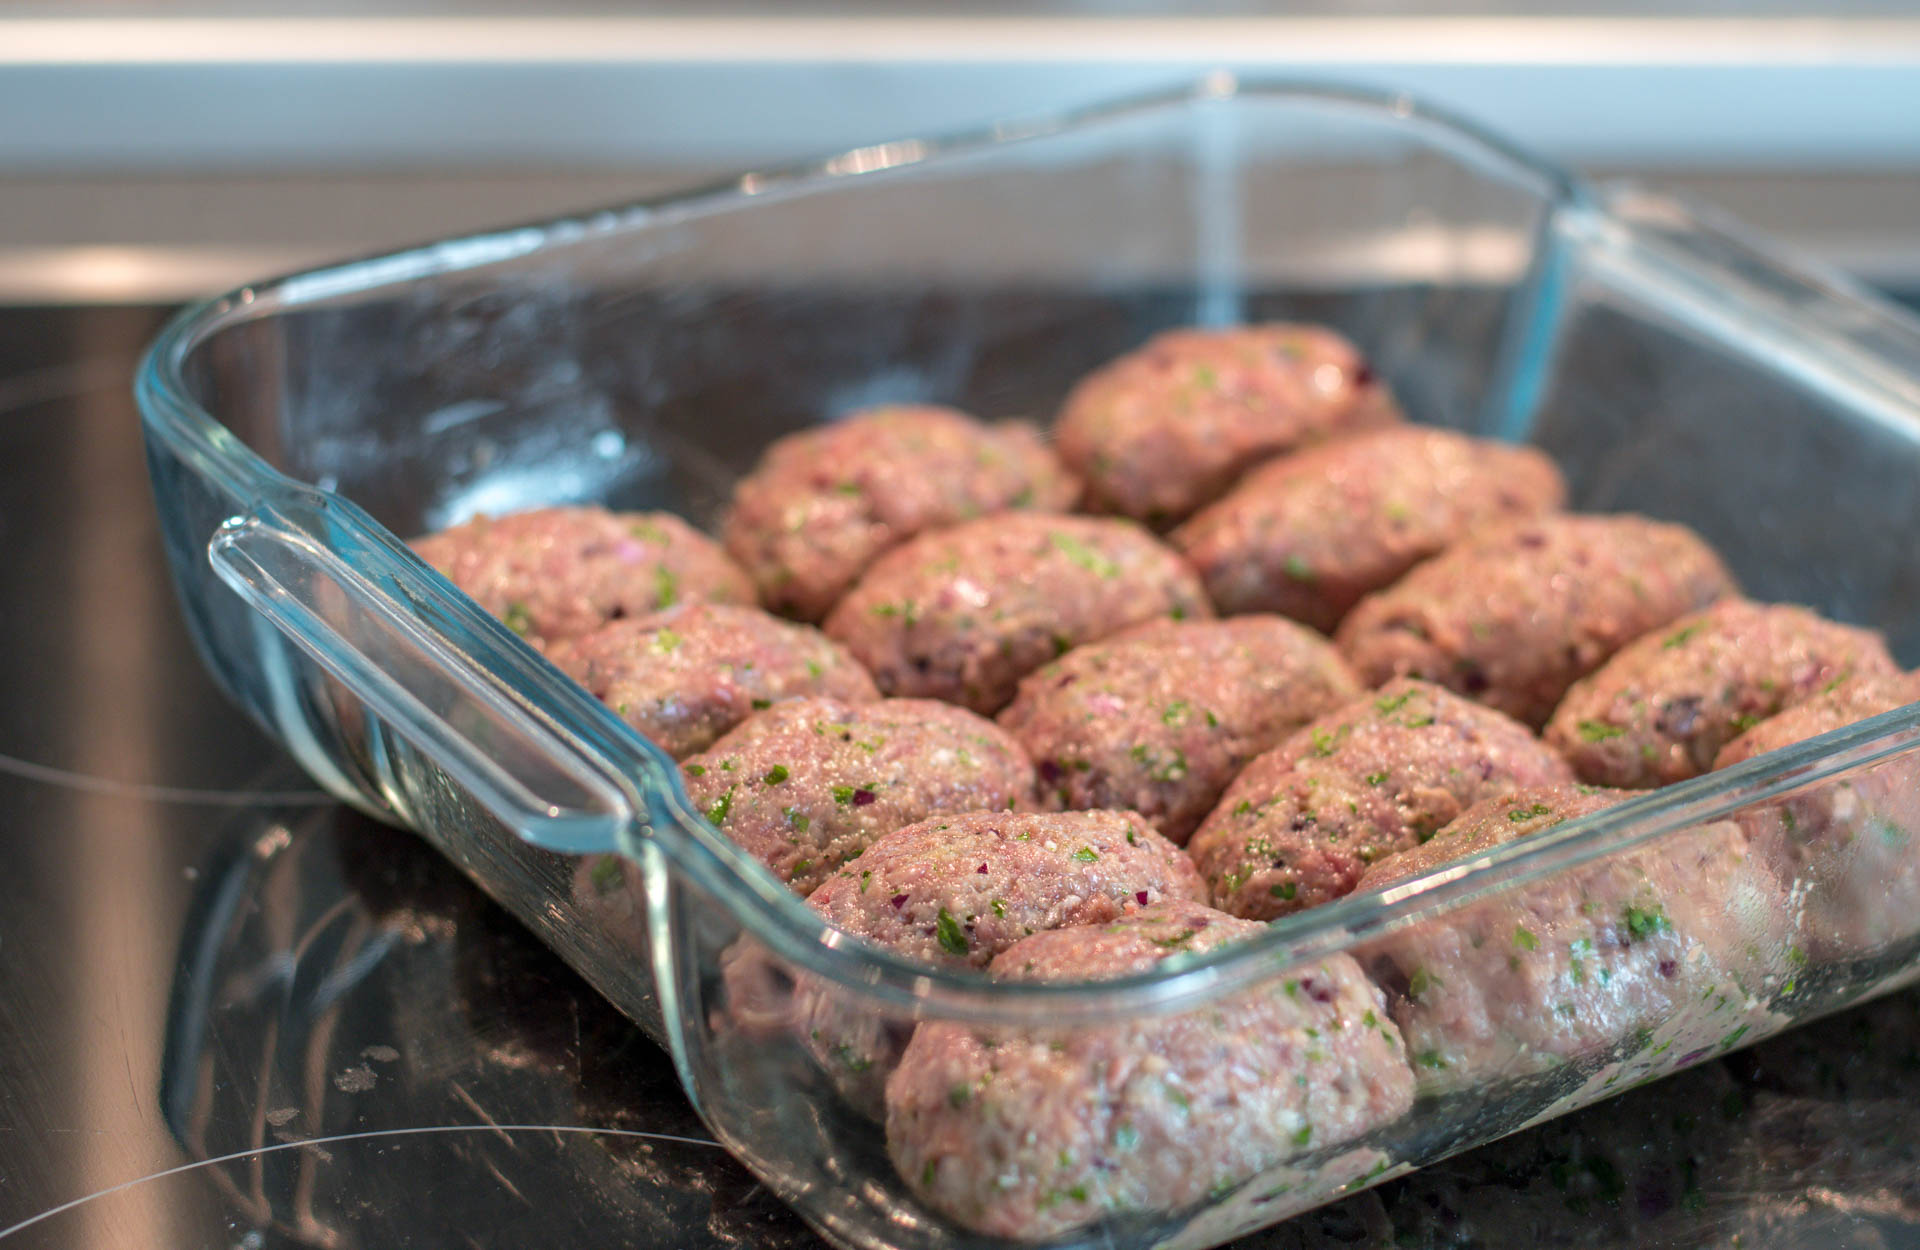 Shape the meatballs and put them in the oven